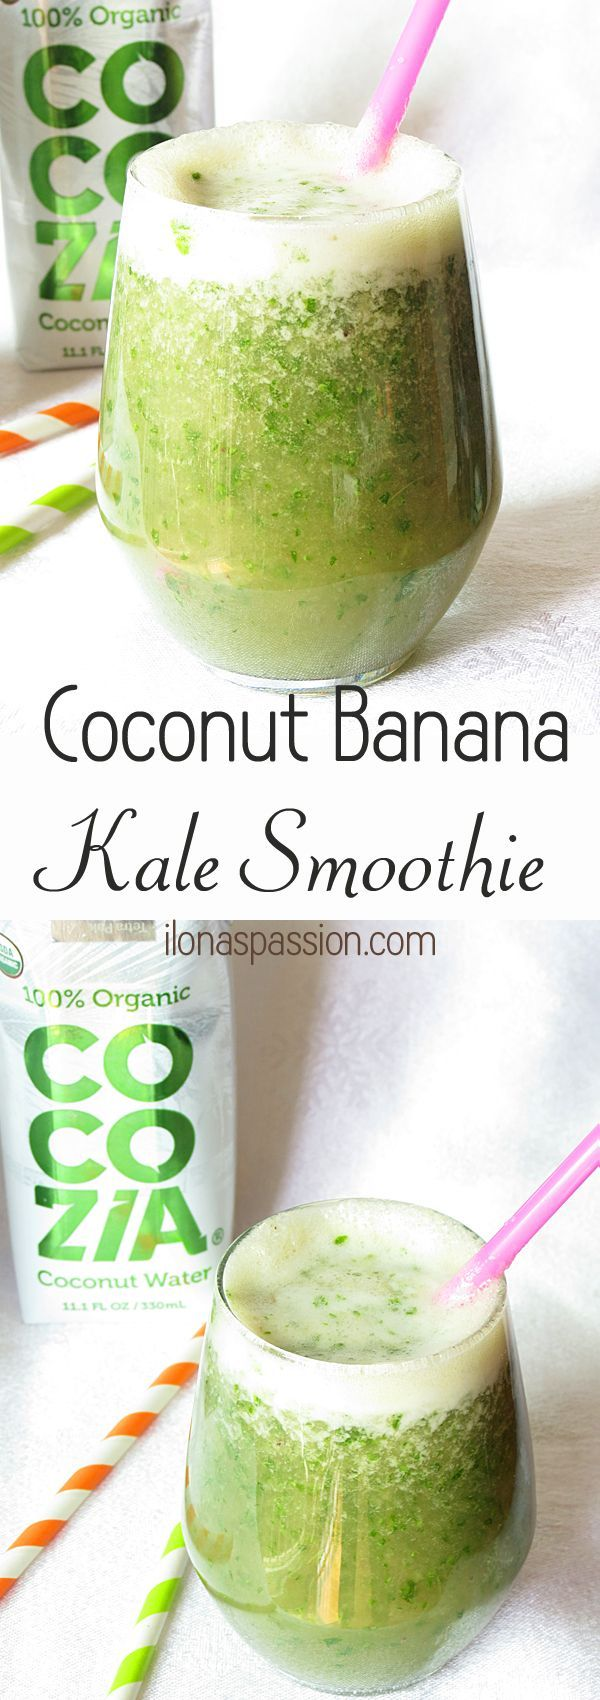 Healthy kale smoothie with banana and a hint of coconut